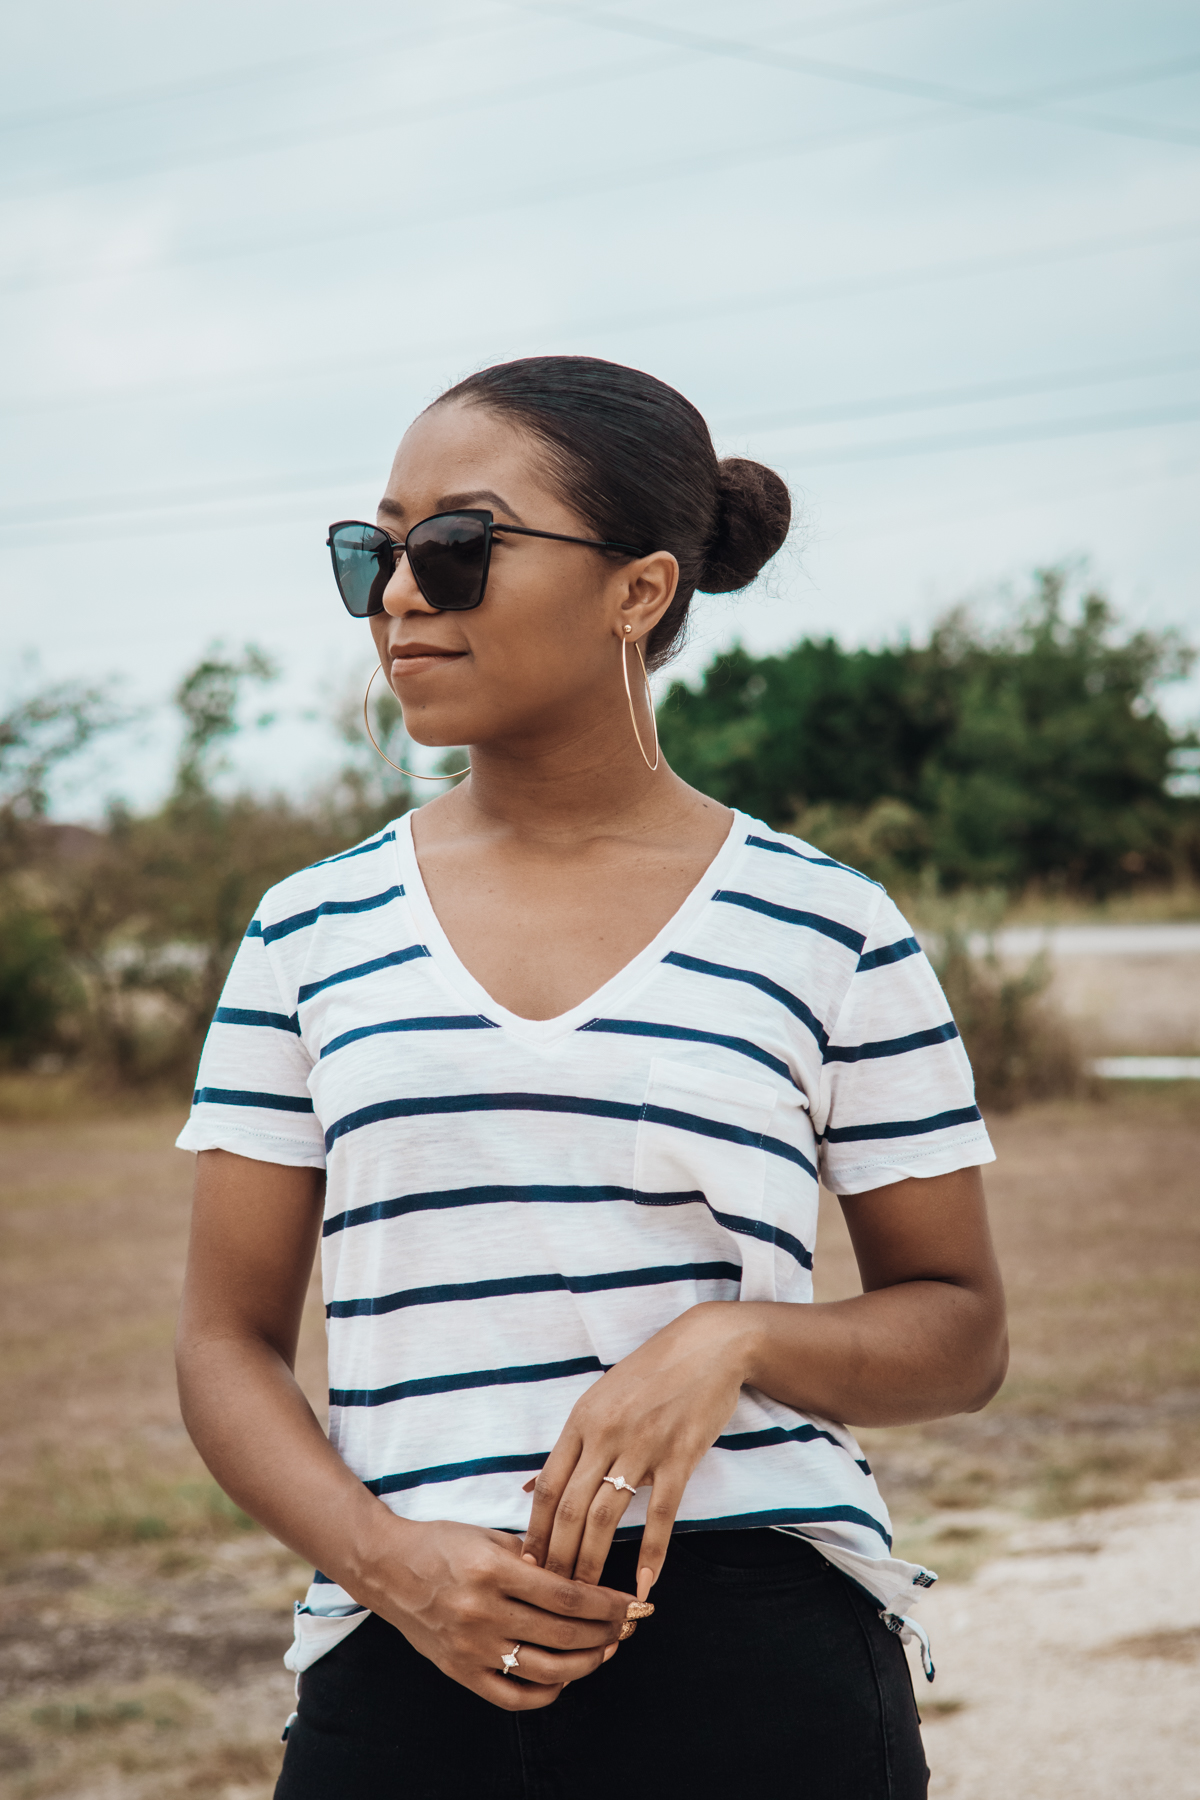 styling the striped tee